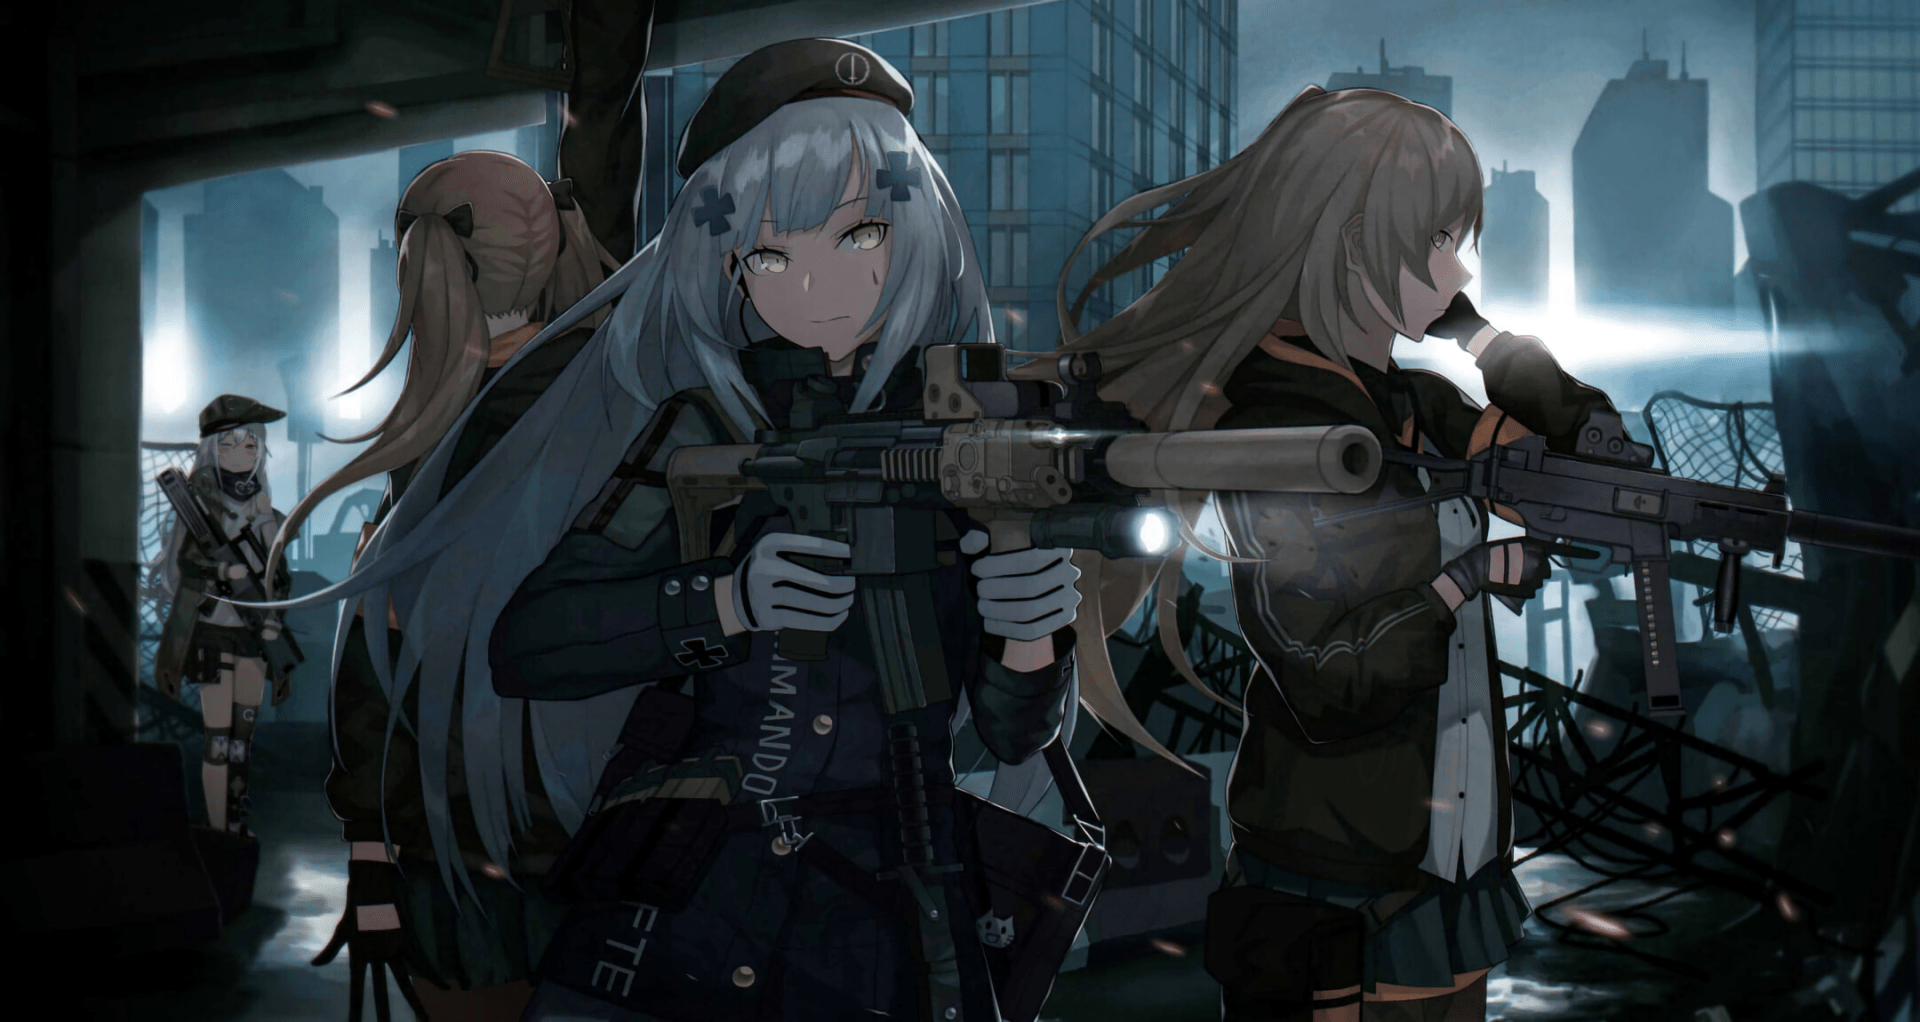 Iphone X Wallpaper Full Hd 少女前线 Full Hd 壁纸 And 背景 2160x1150 Id 871564